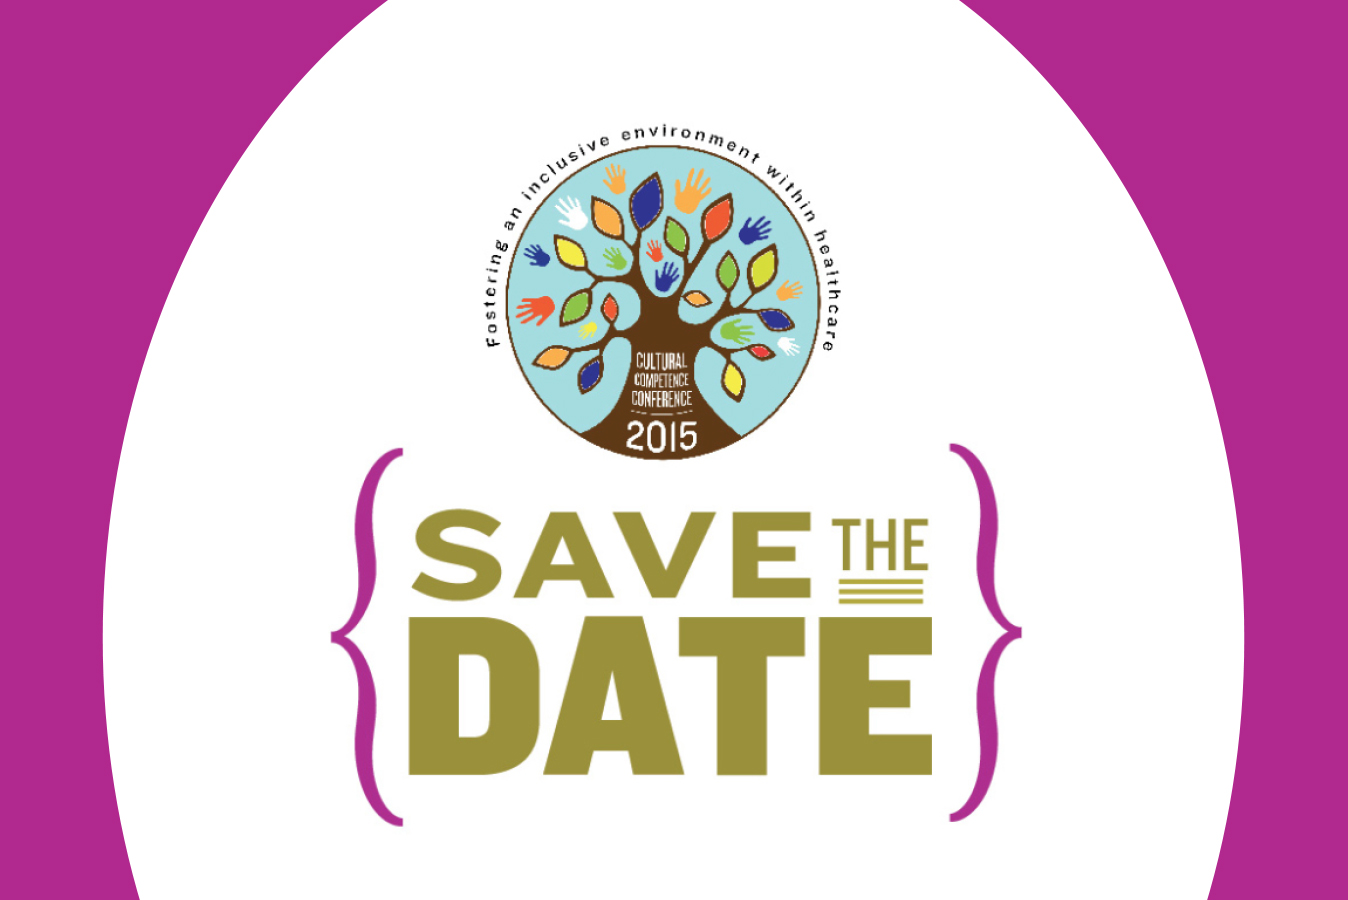 Save the Date: Fourth Annual Cultural Competence Conference